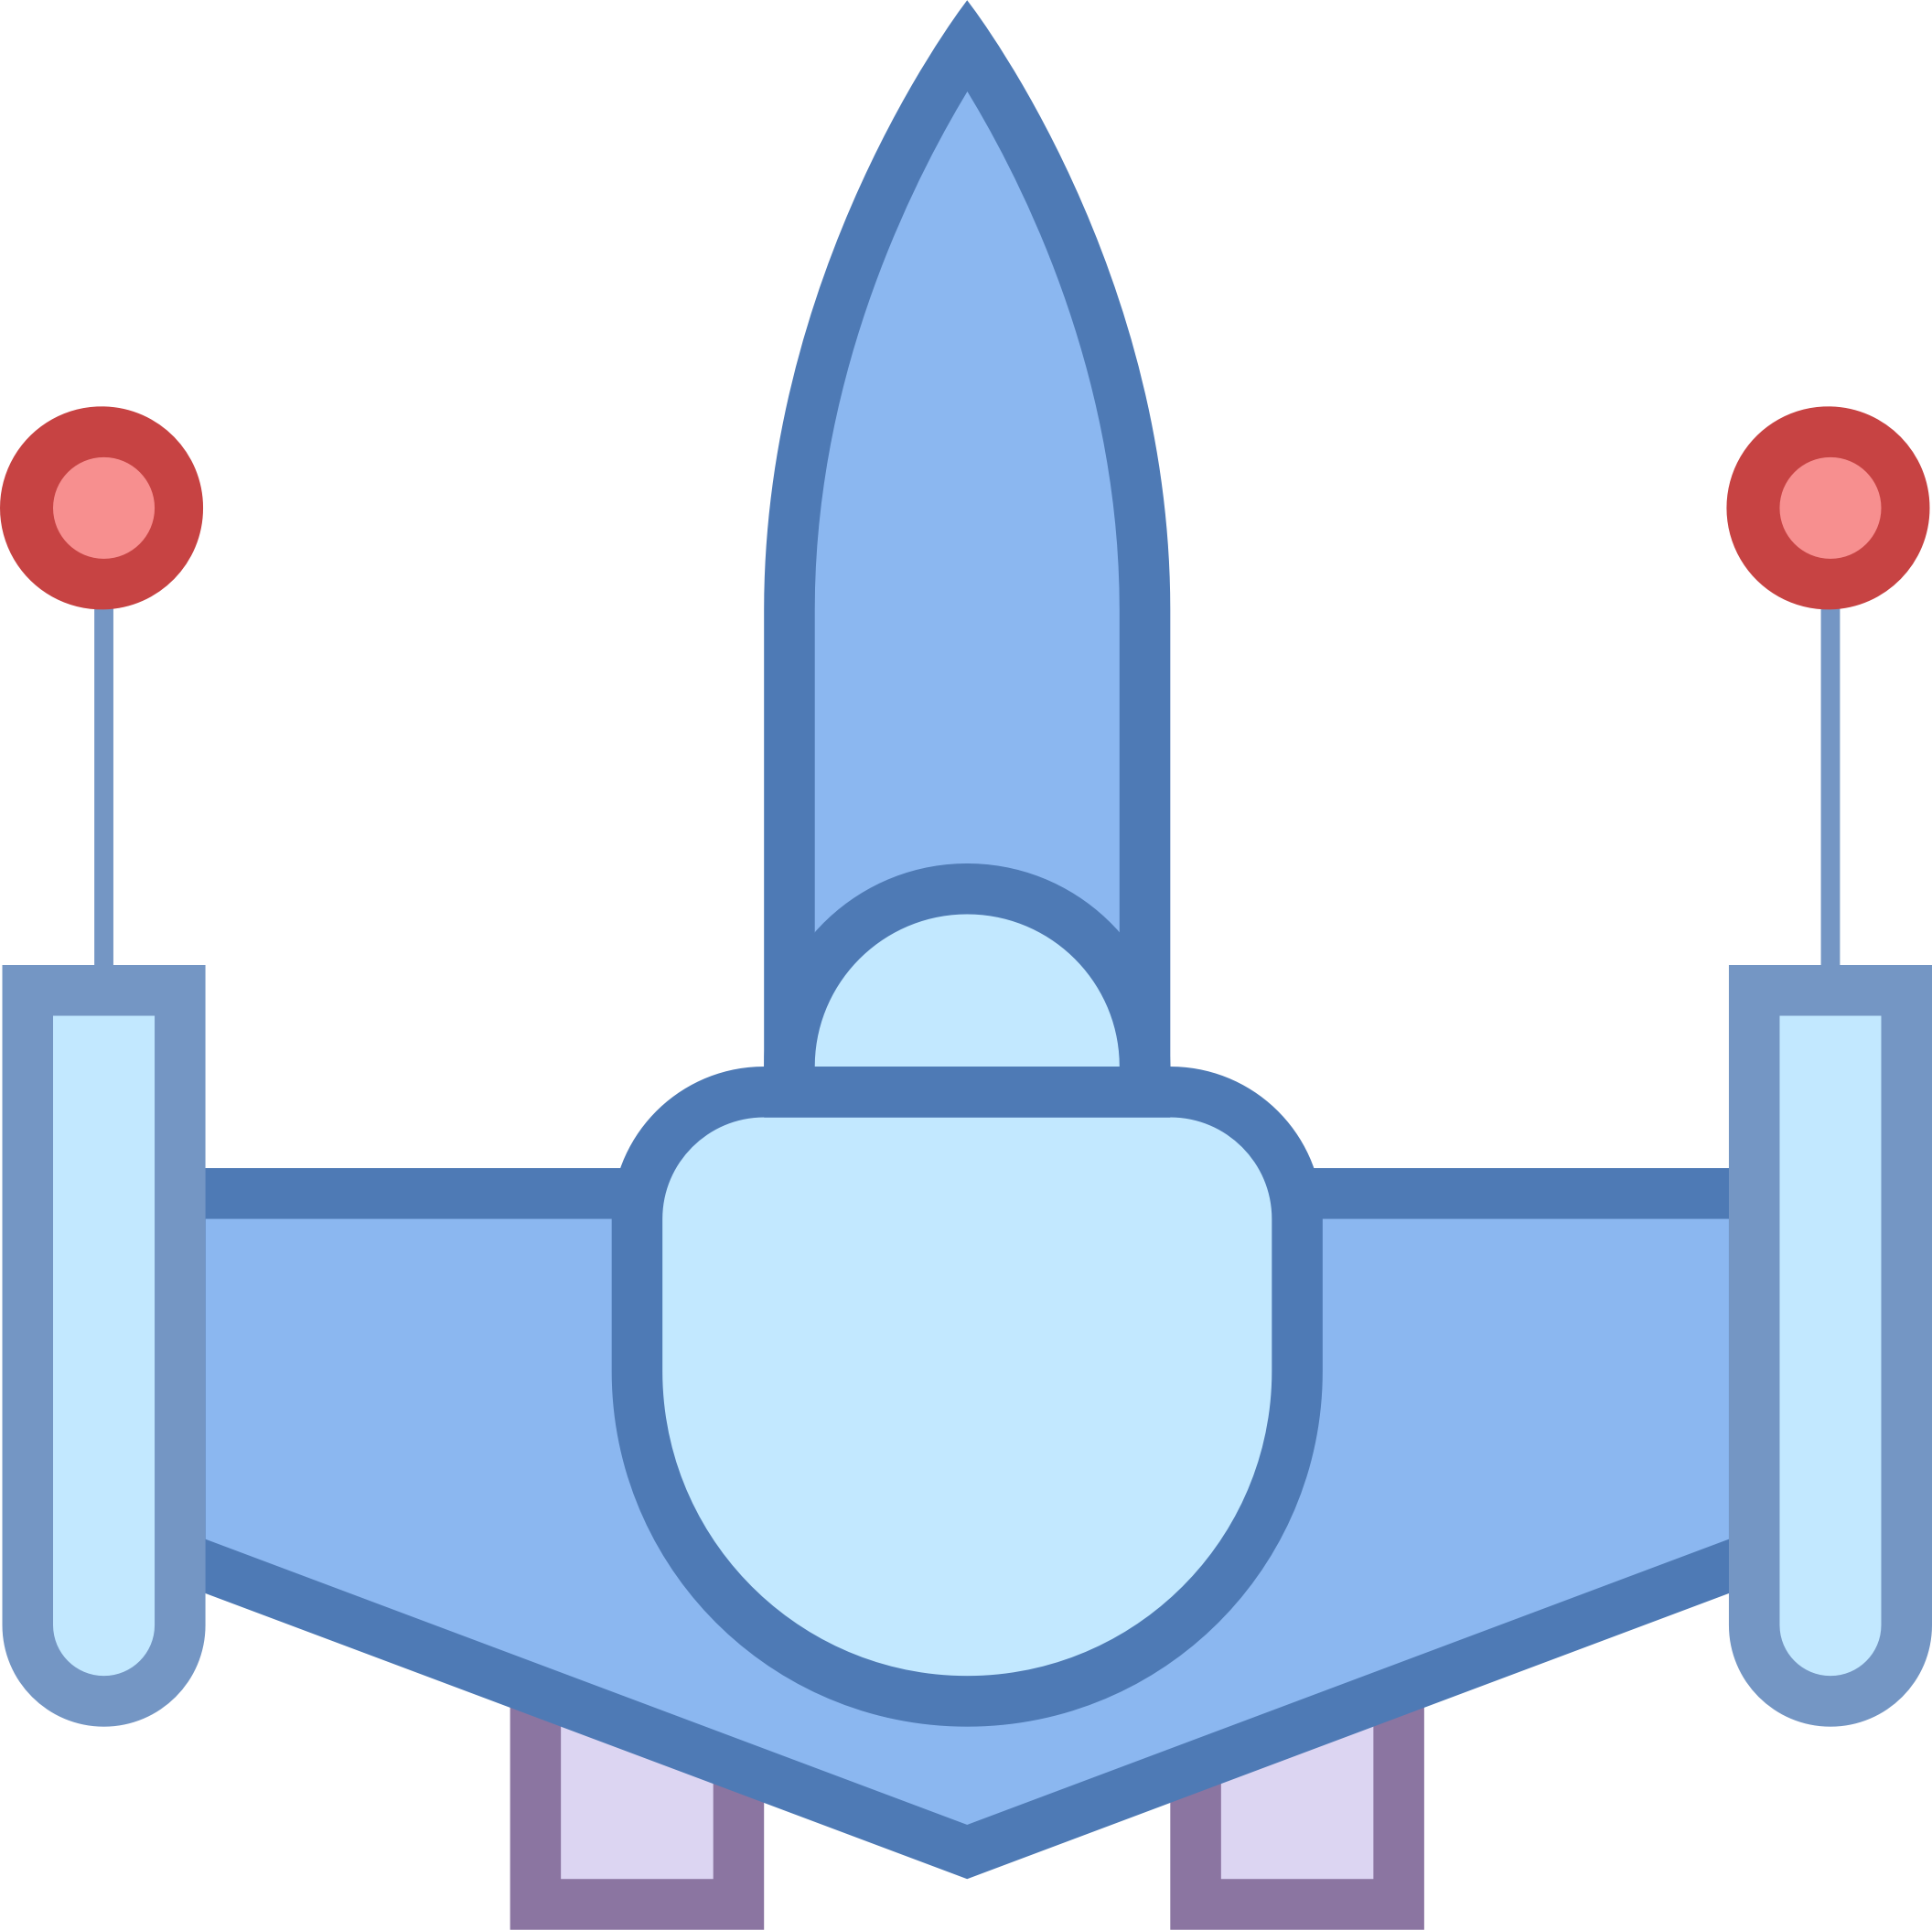 Space Fighter 2 by Designer.io